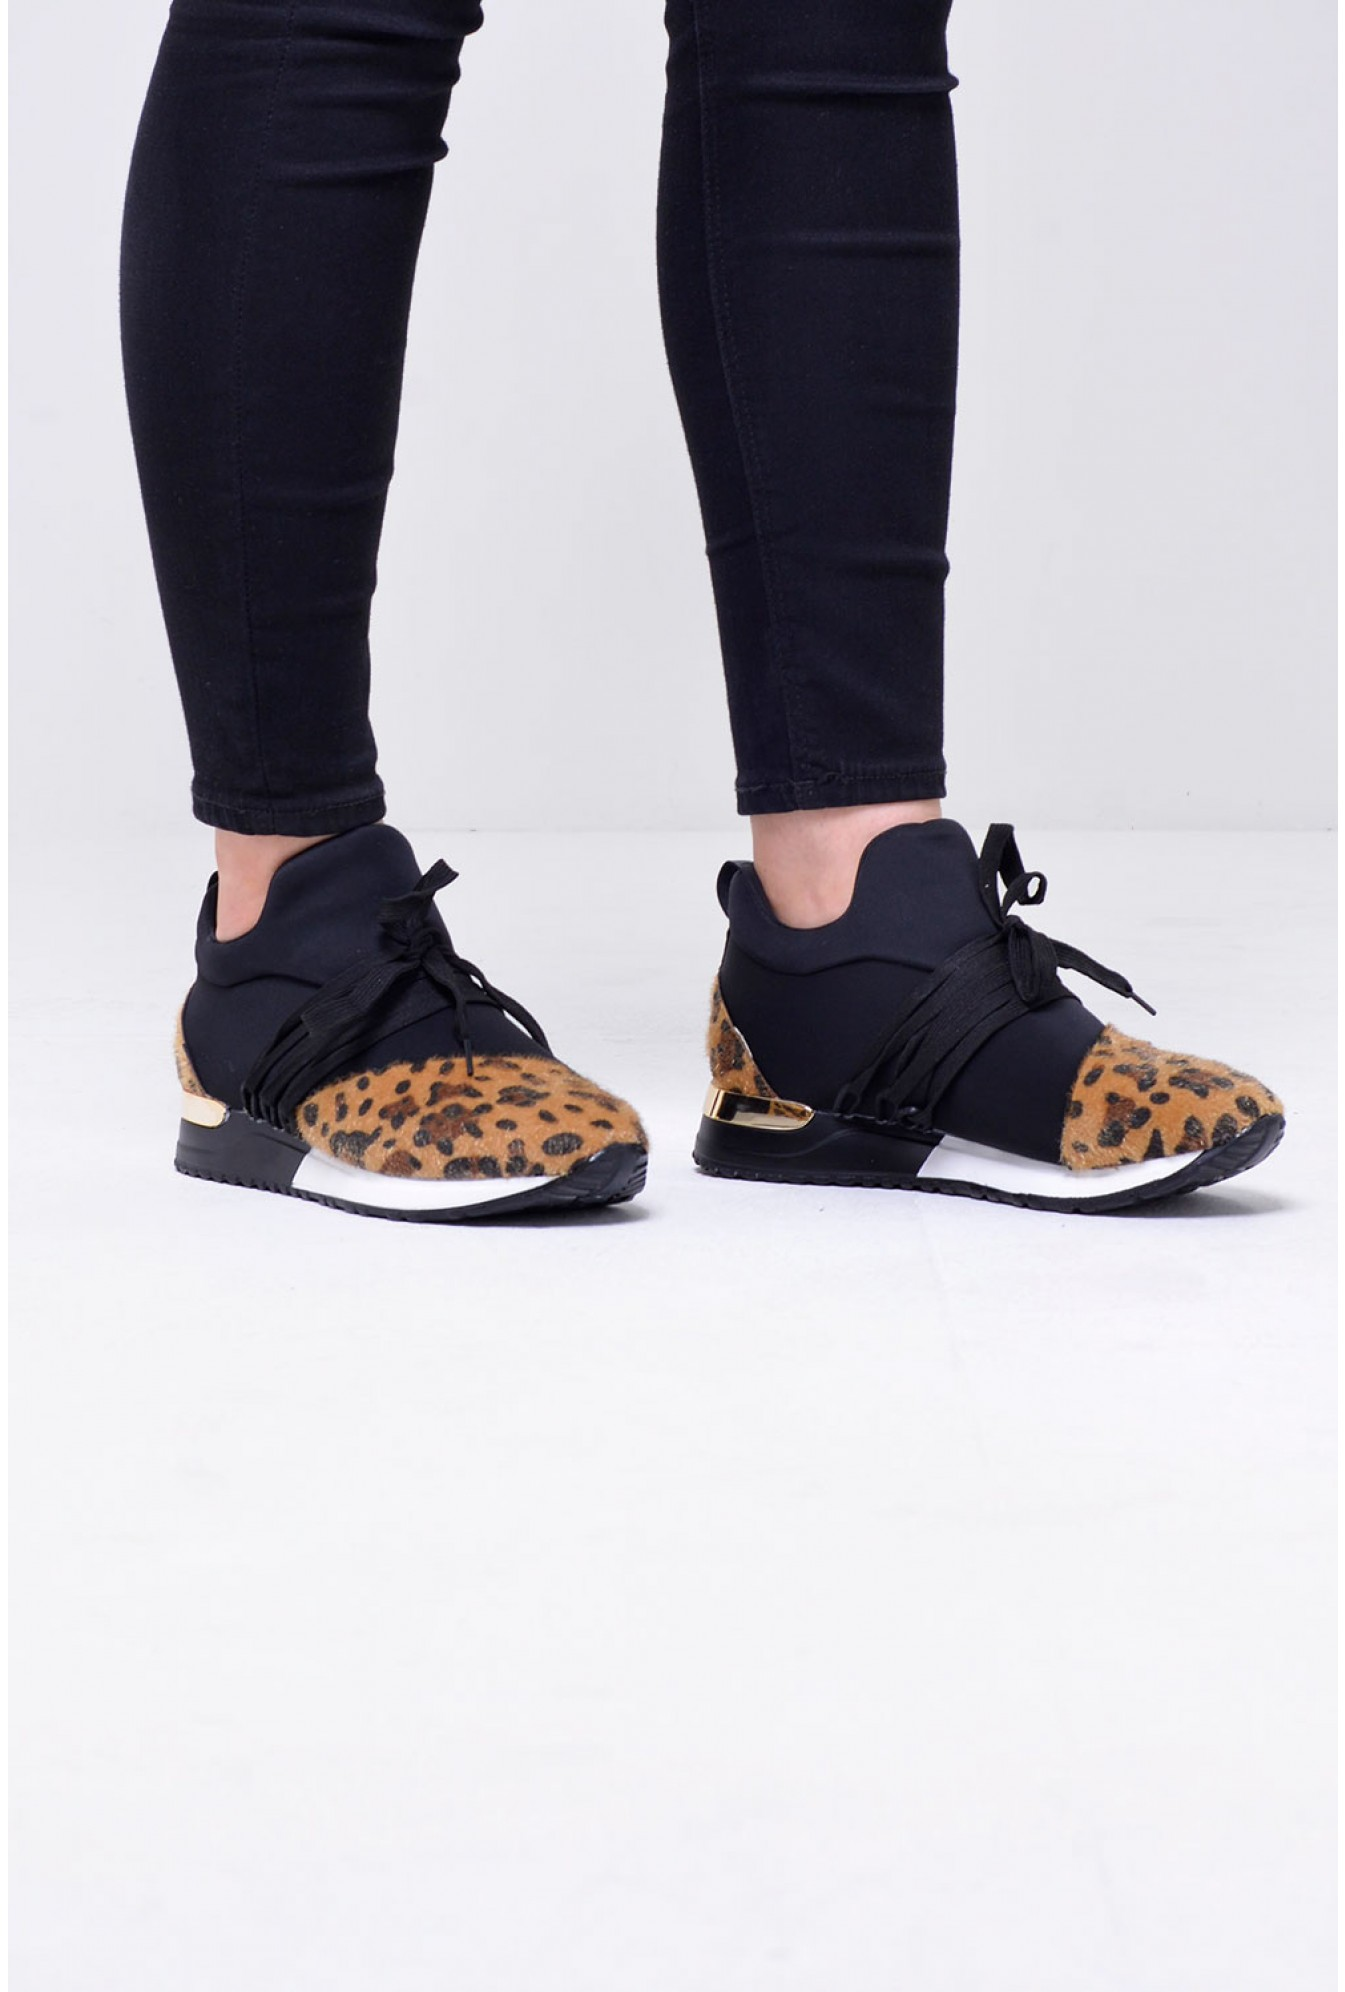 15dea68161ca1 No Doubt Bianca Lace Up Trainers in Black Leopard Print | iCLOTHING